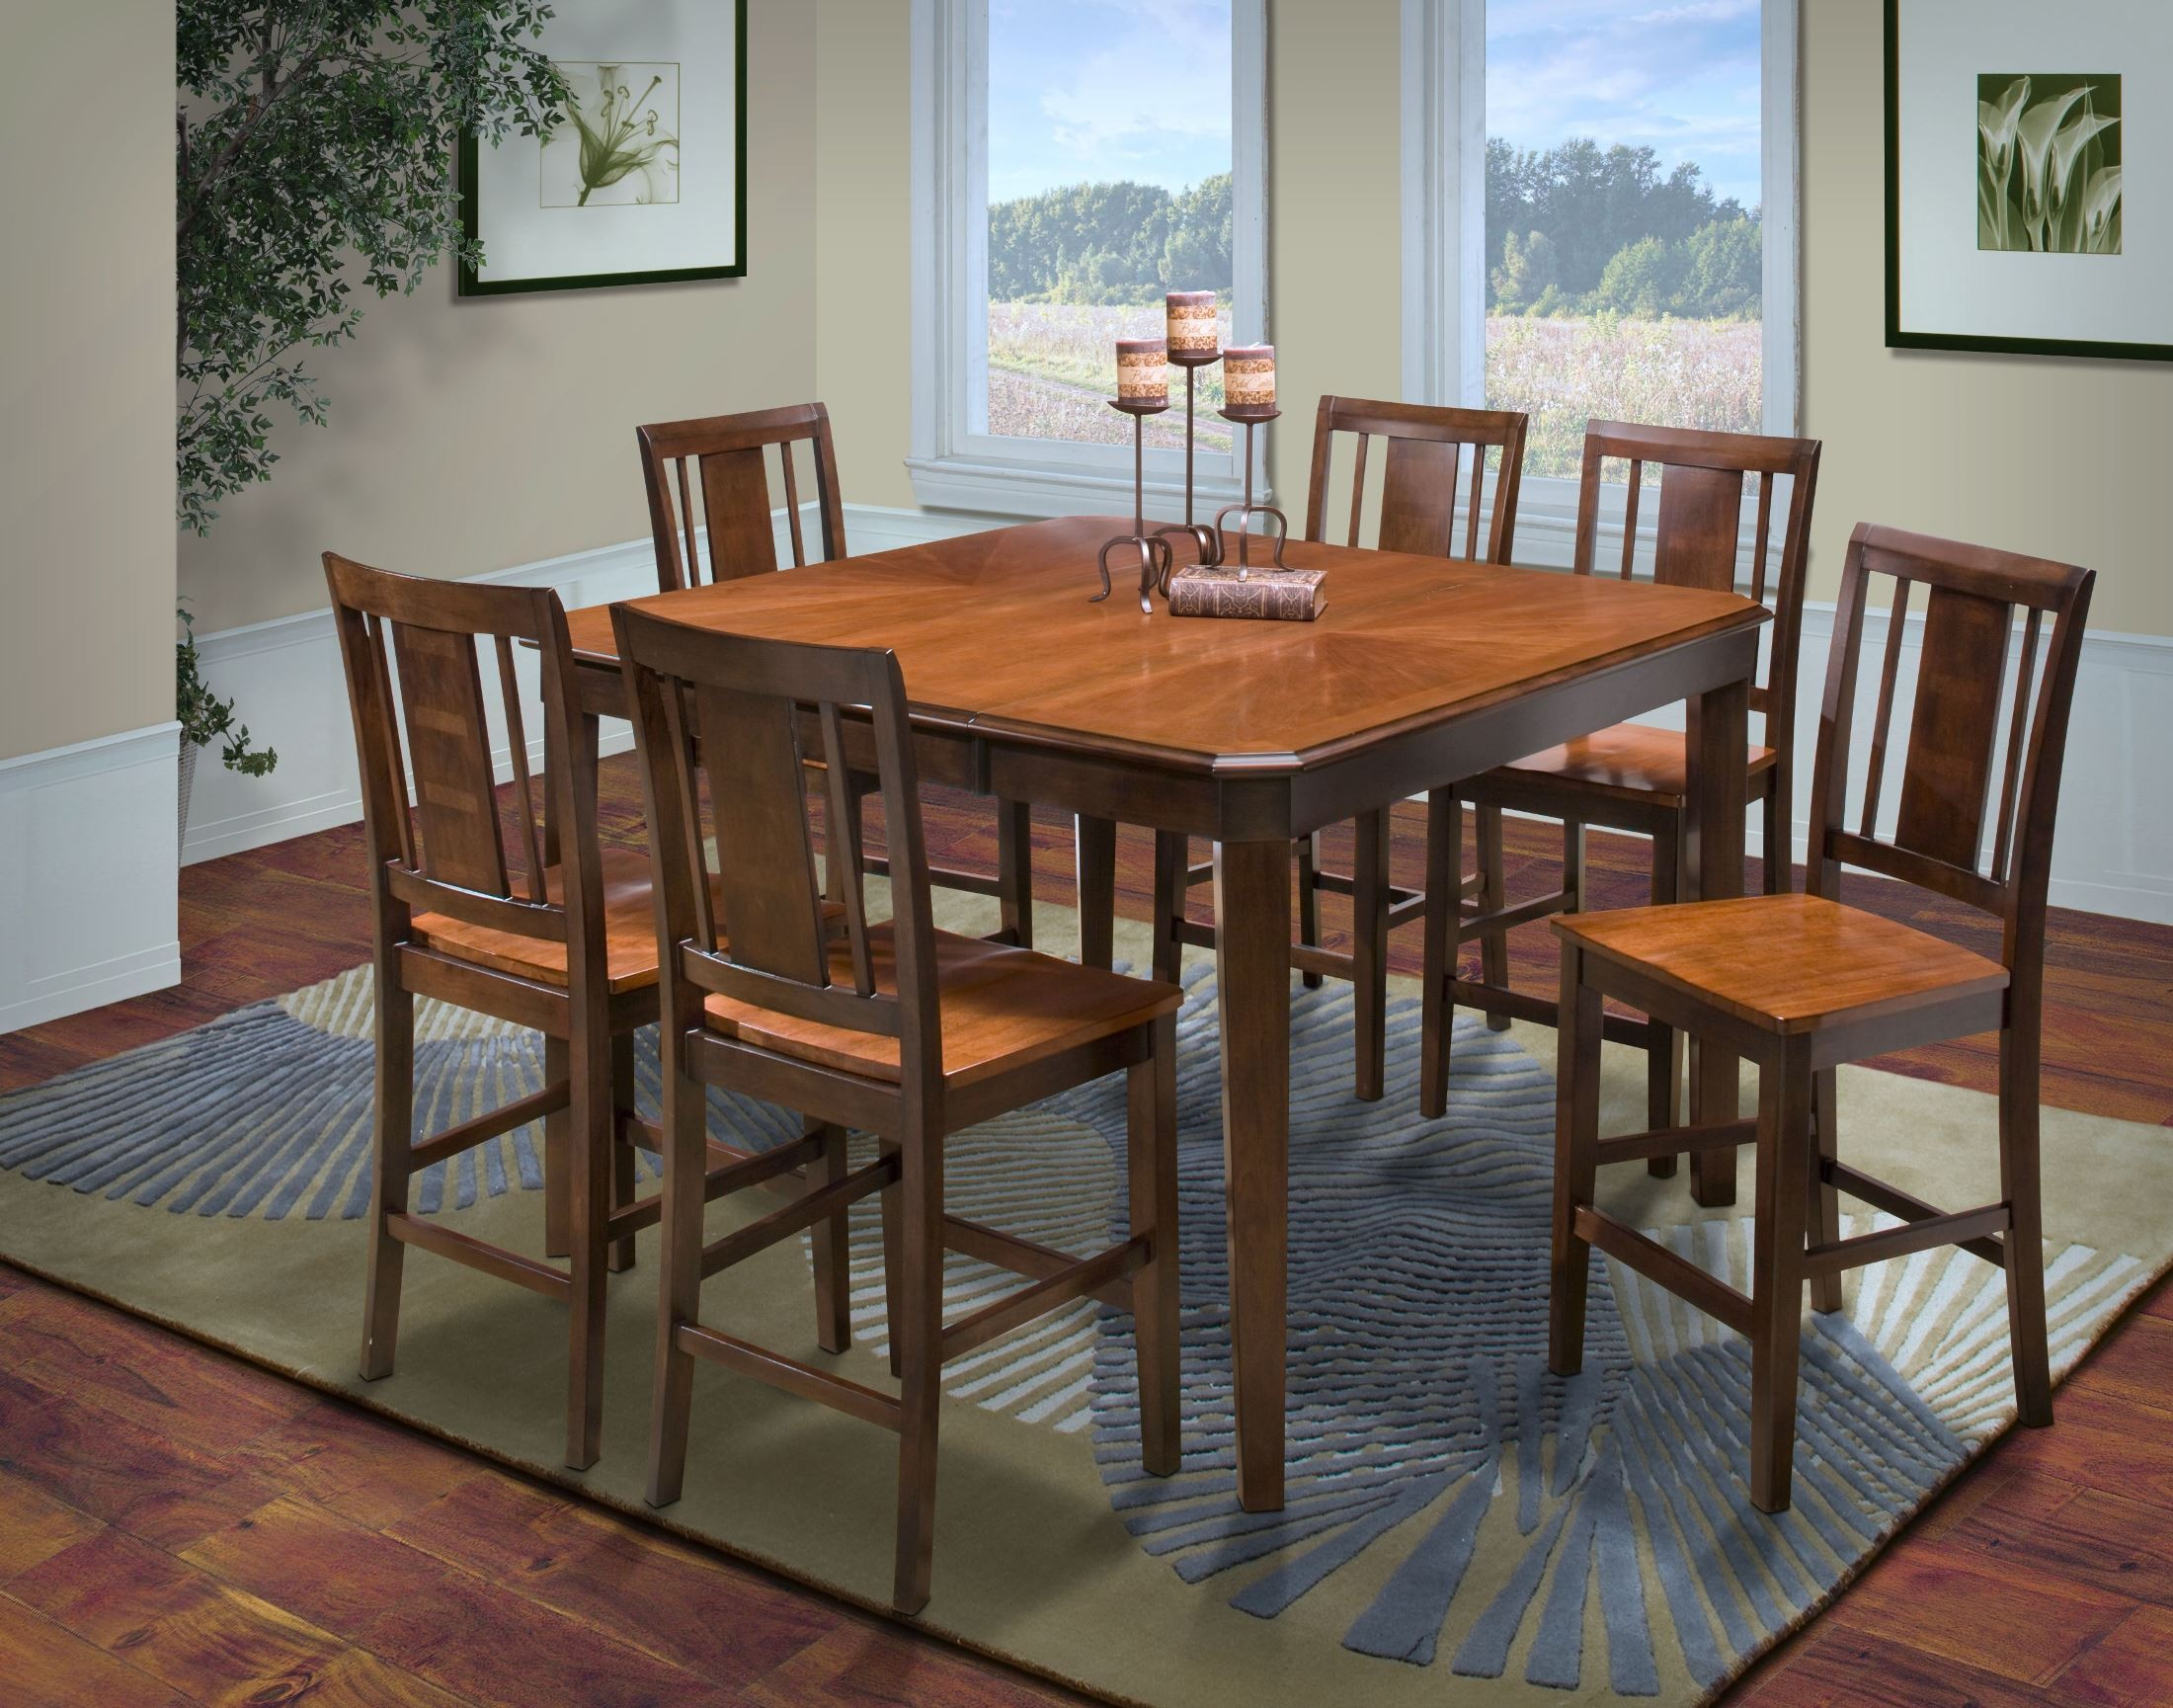 Counter Height Corner Dining Set : ... Ginger/African Chestnut Cut Corner Counter Height Dining Room Set